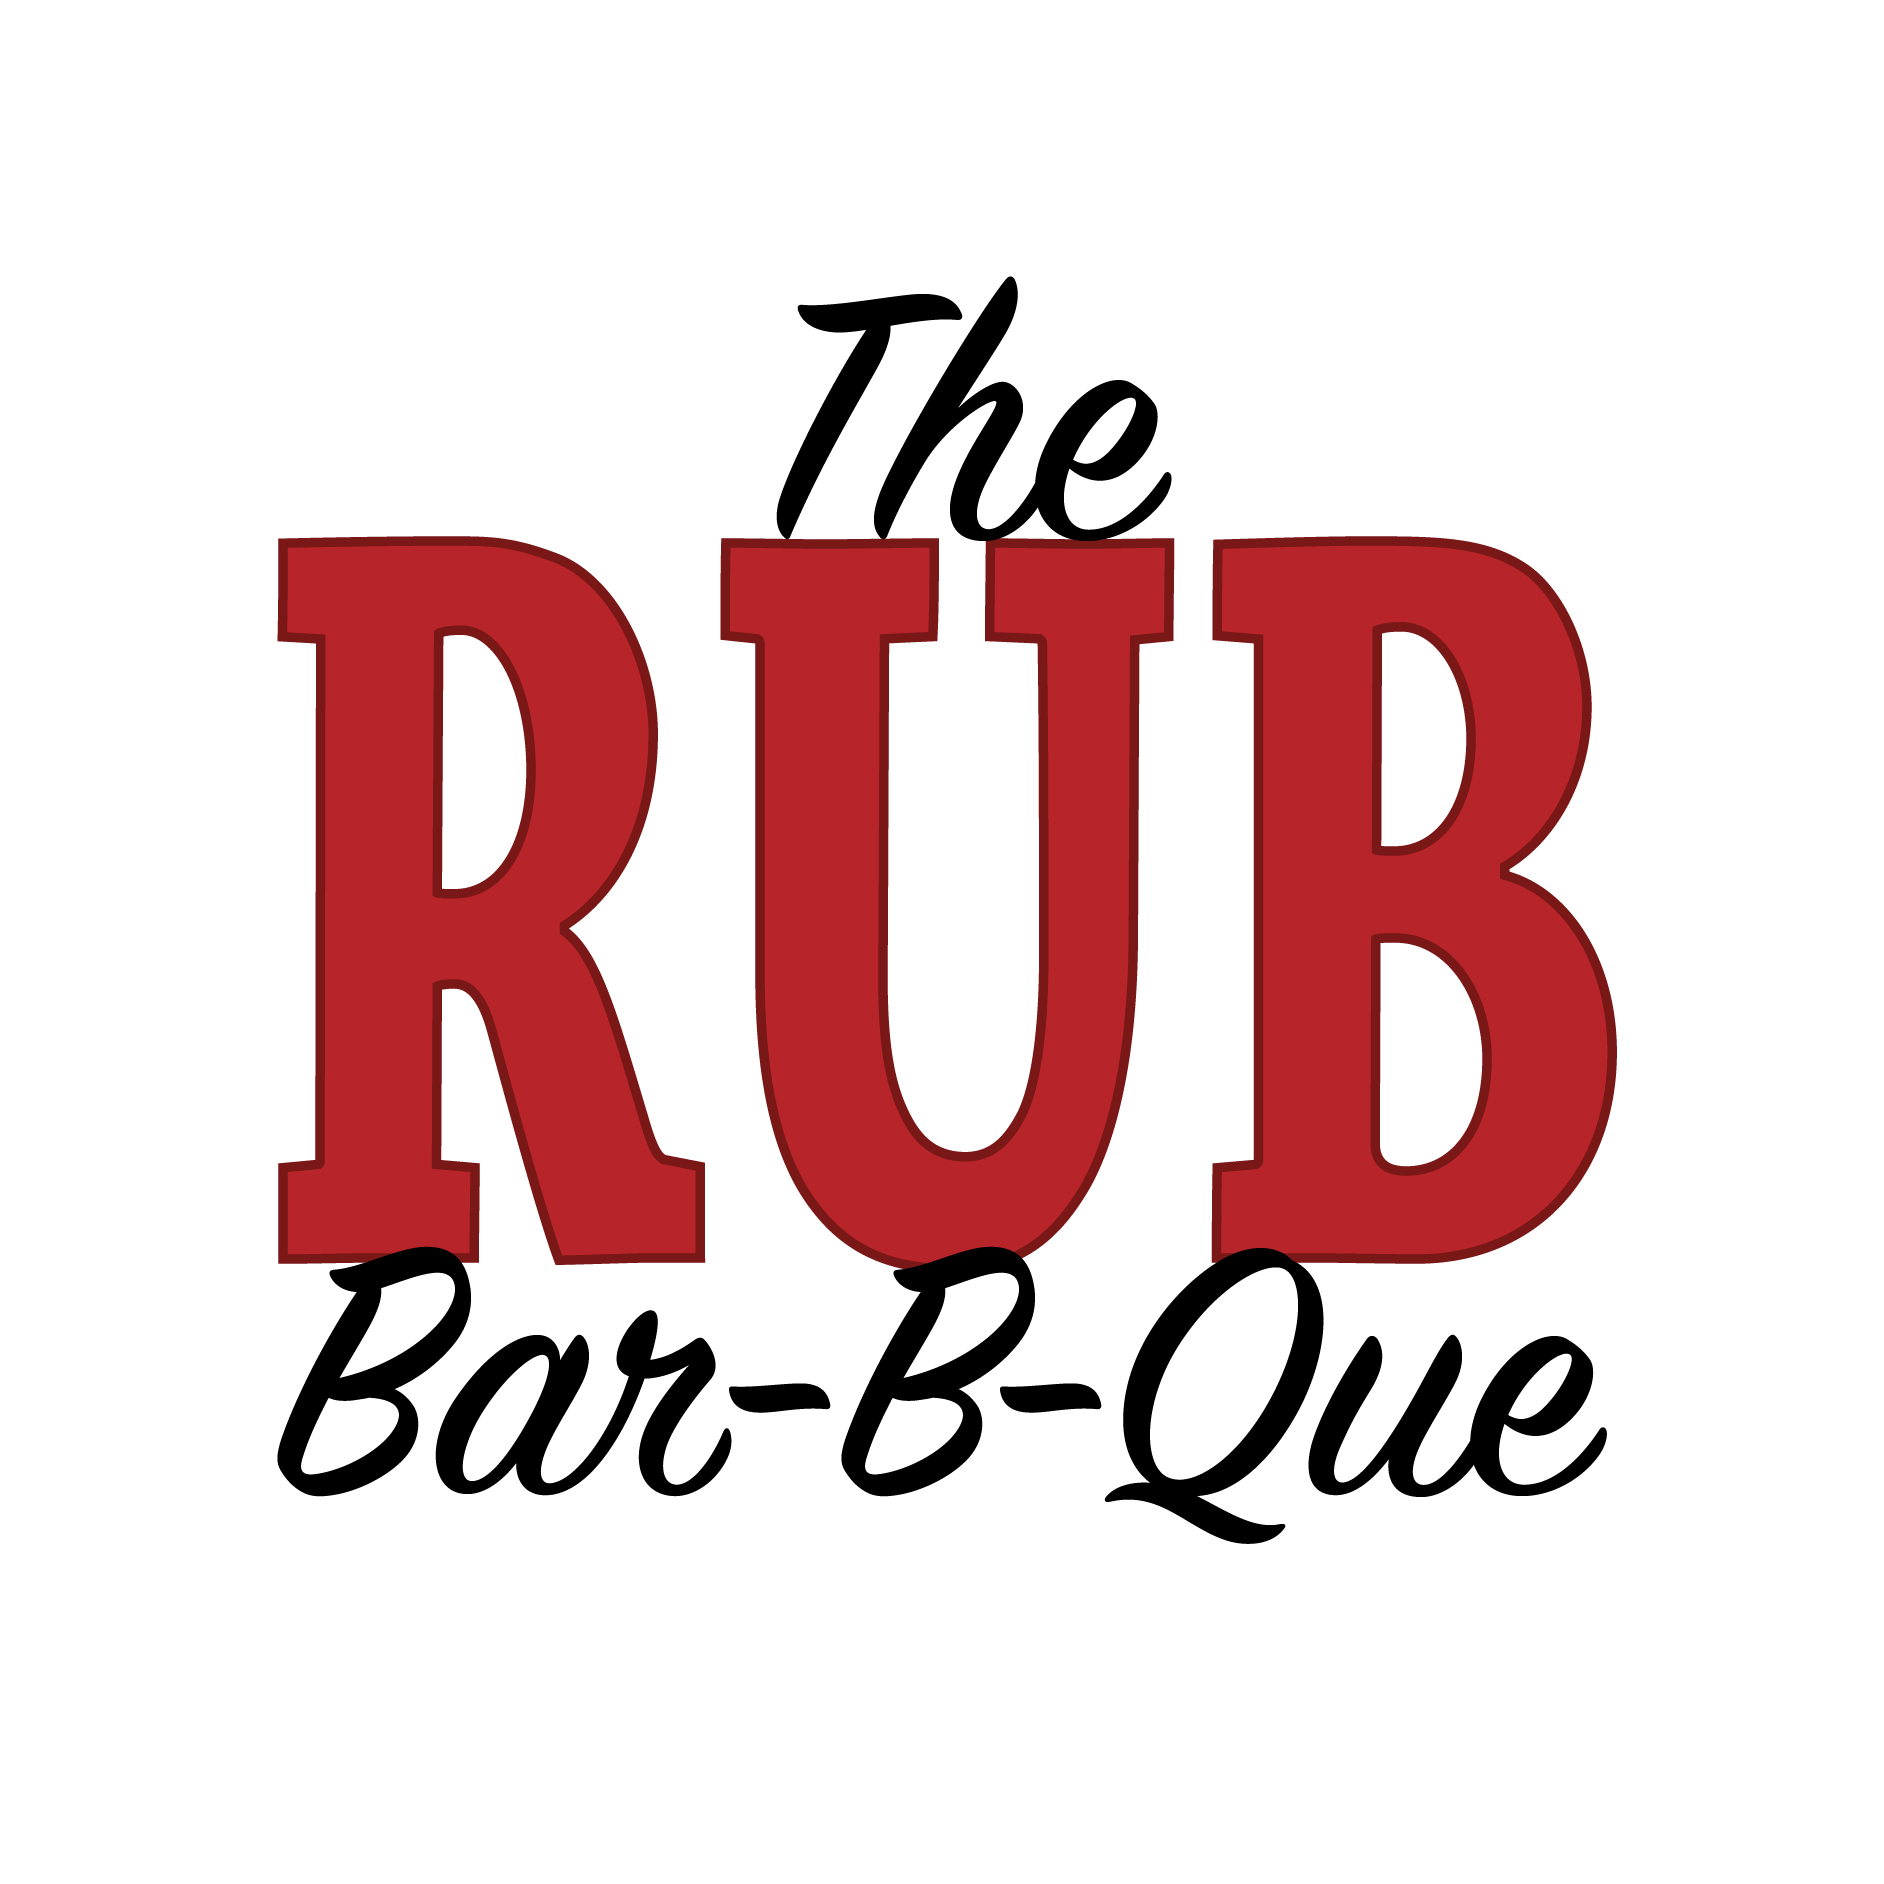 The Rub Bar-B-Que restaurant located in OLATHE, KS